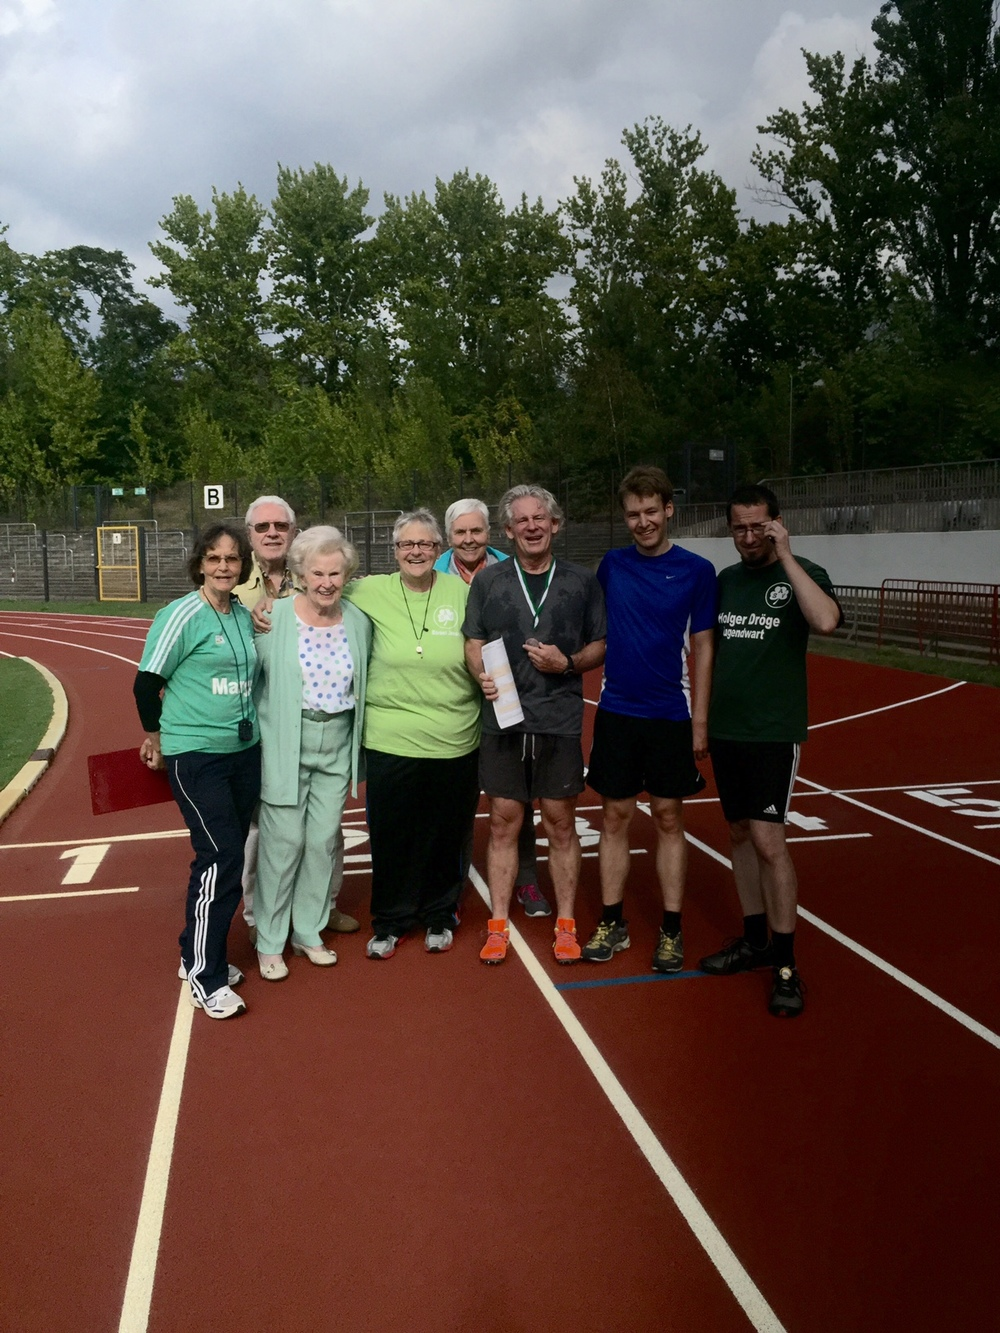 Some of those who came out to the Poststadion in Berlin for the race2walk2016.com 100m and 200m runs.